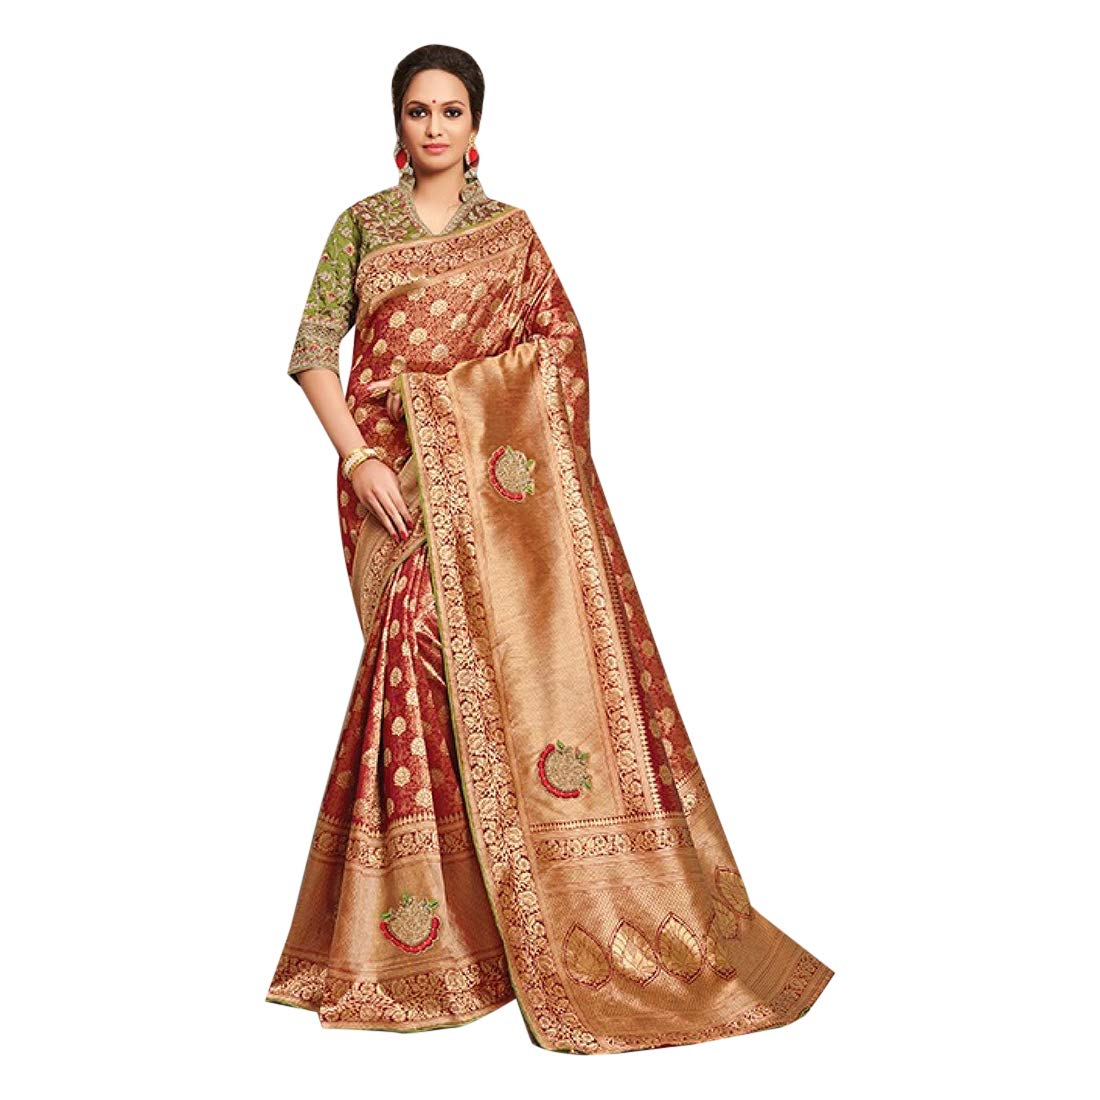 Copper gold Indian Traditional Festive Designer Saree Women Sari with Blouse piece Evening Party wear 7835